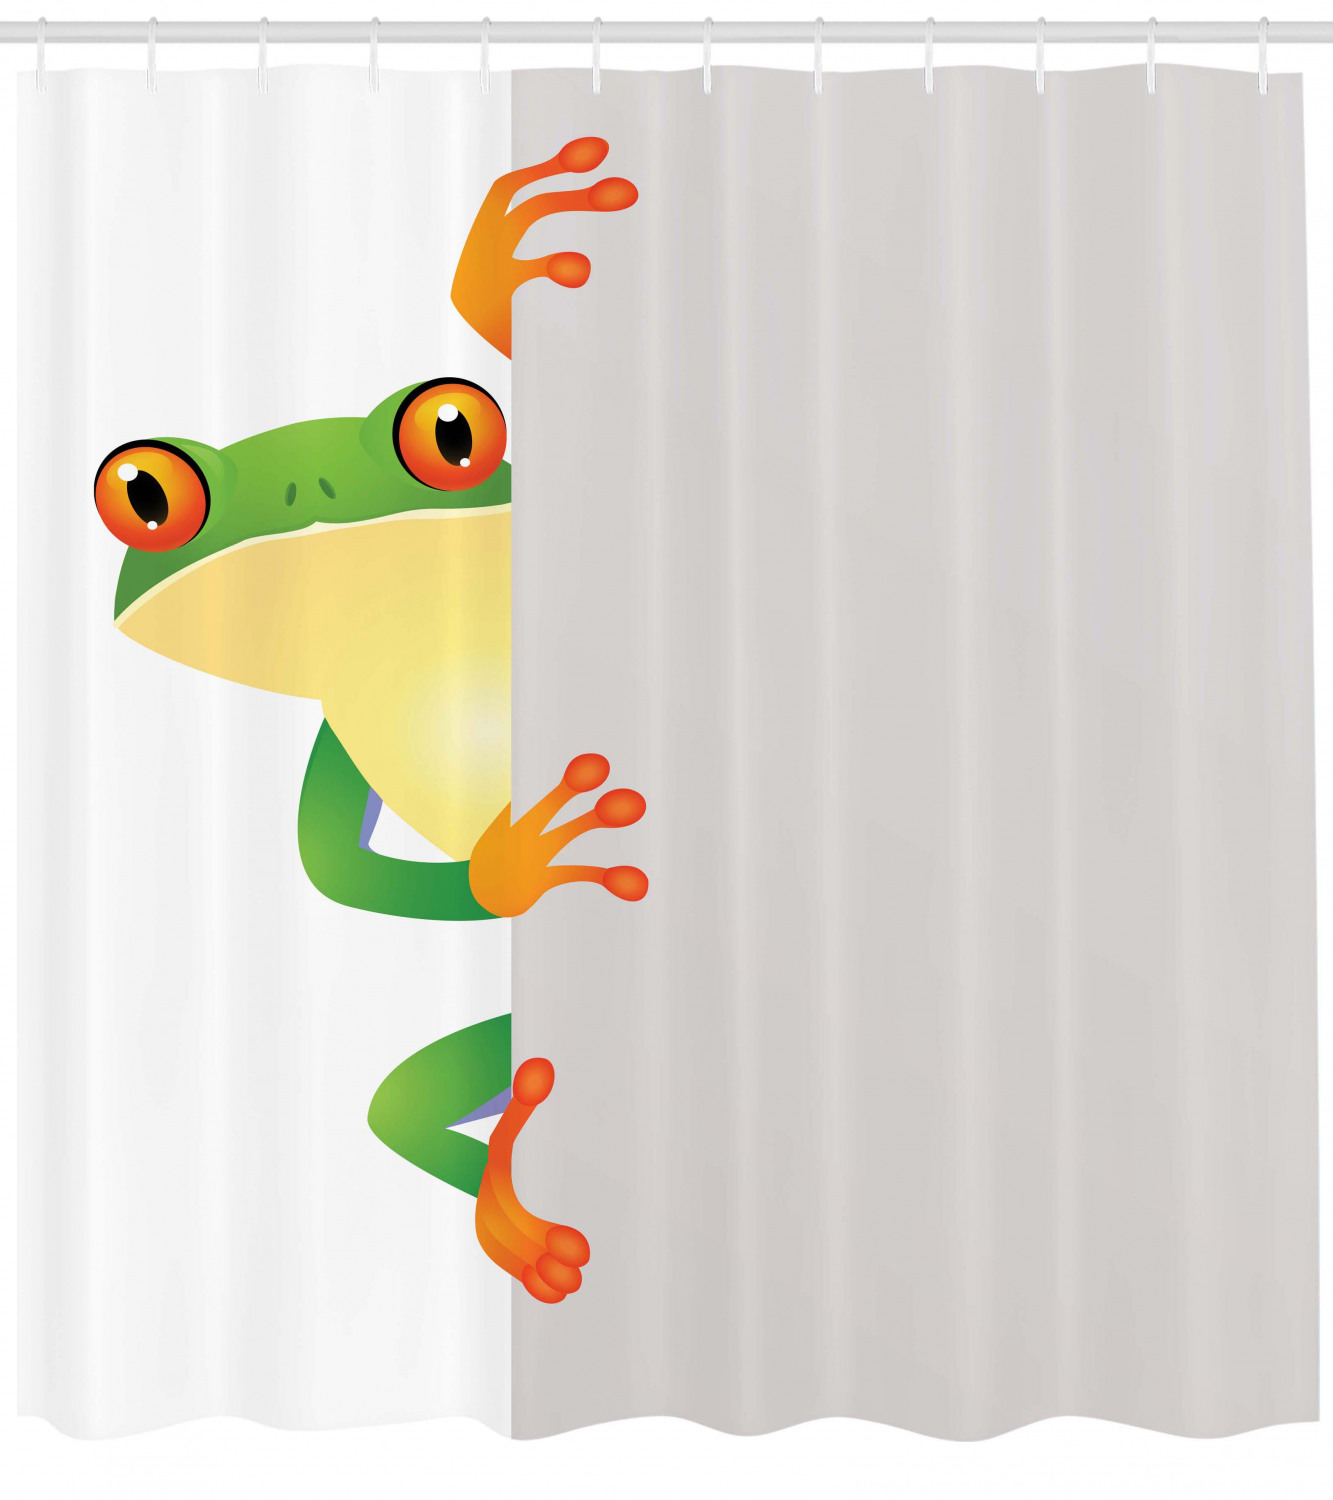 African Shower Curtain Frog Prince Prince Prince Reptiles Print for Bathroom ad6eeb